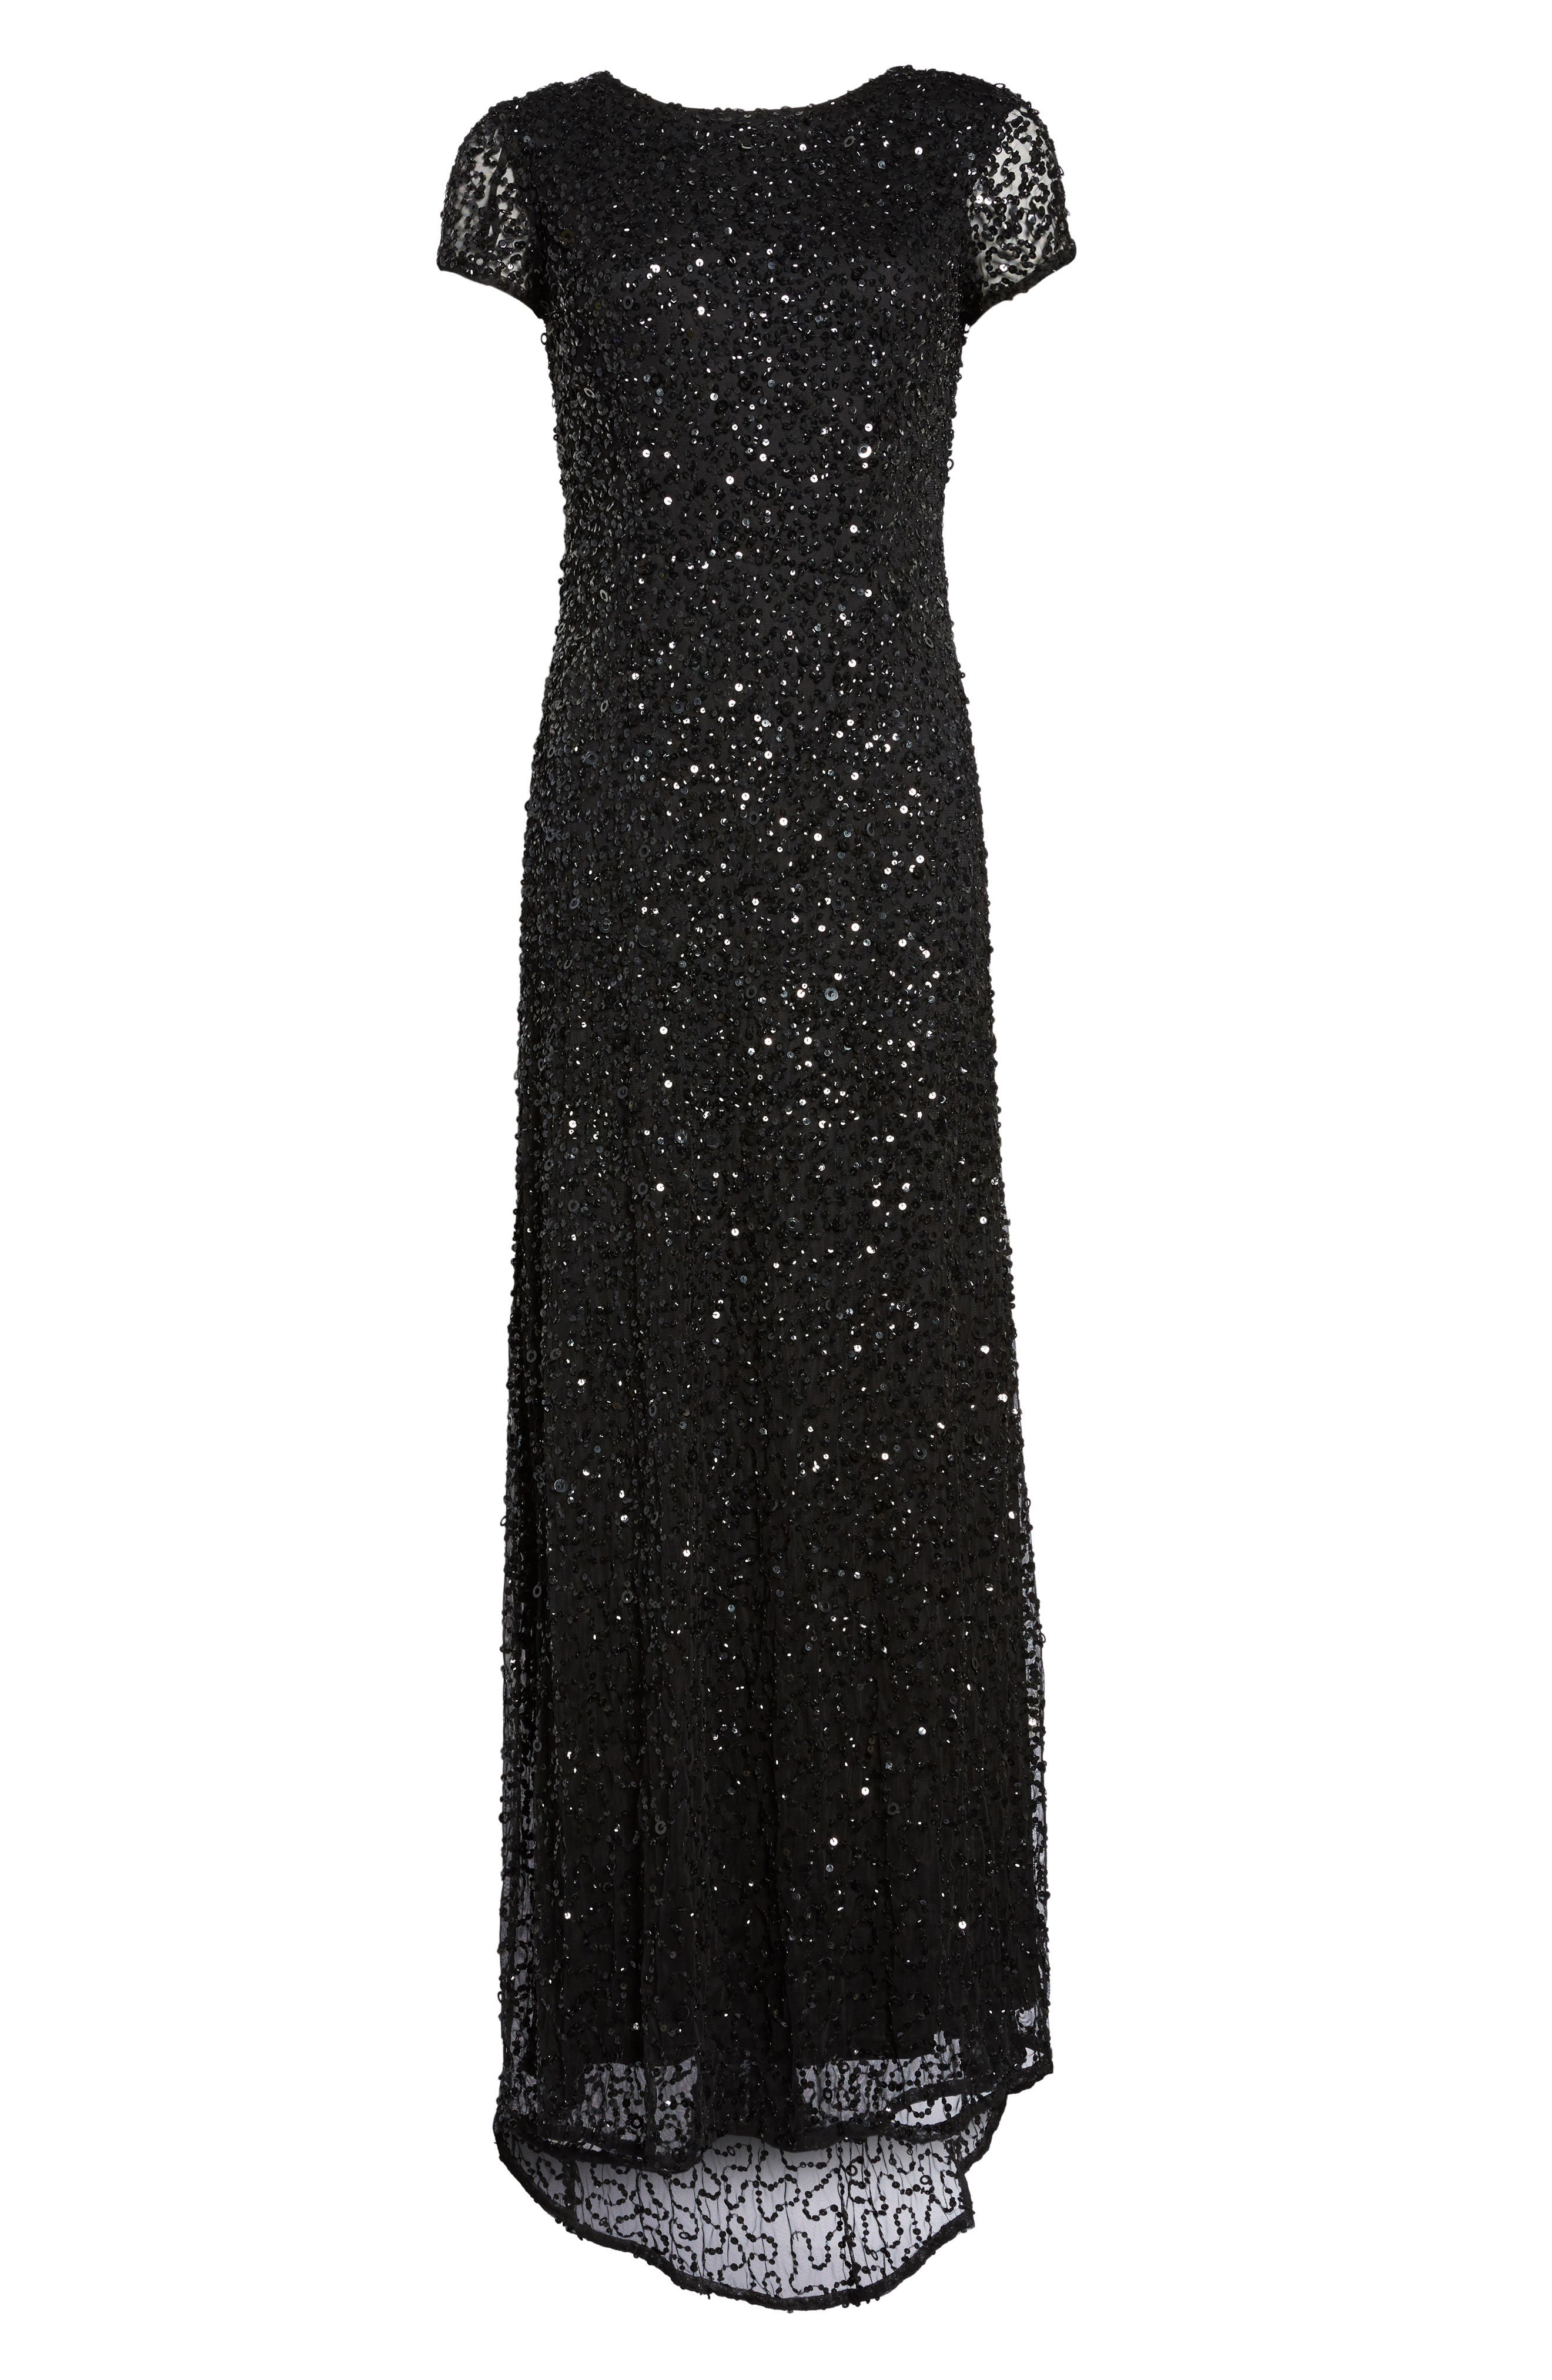 ADRIANNA PAPELL Short Sleeve Sequin Mesh Gown, Main, color, 002